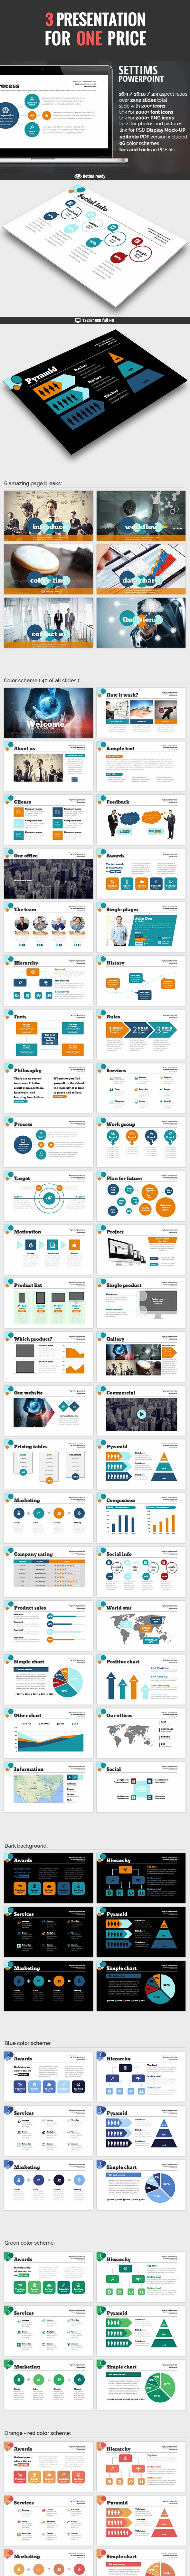 3 in 1 Powerpoint Bundle V3.0 - PowerPoint Templates Presentation Templates